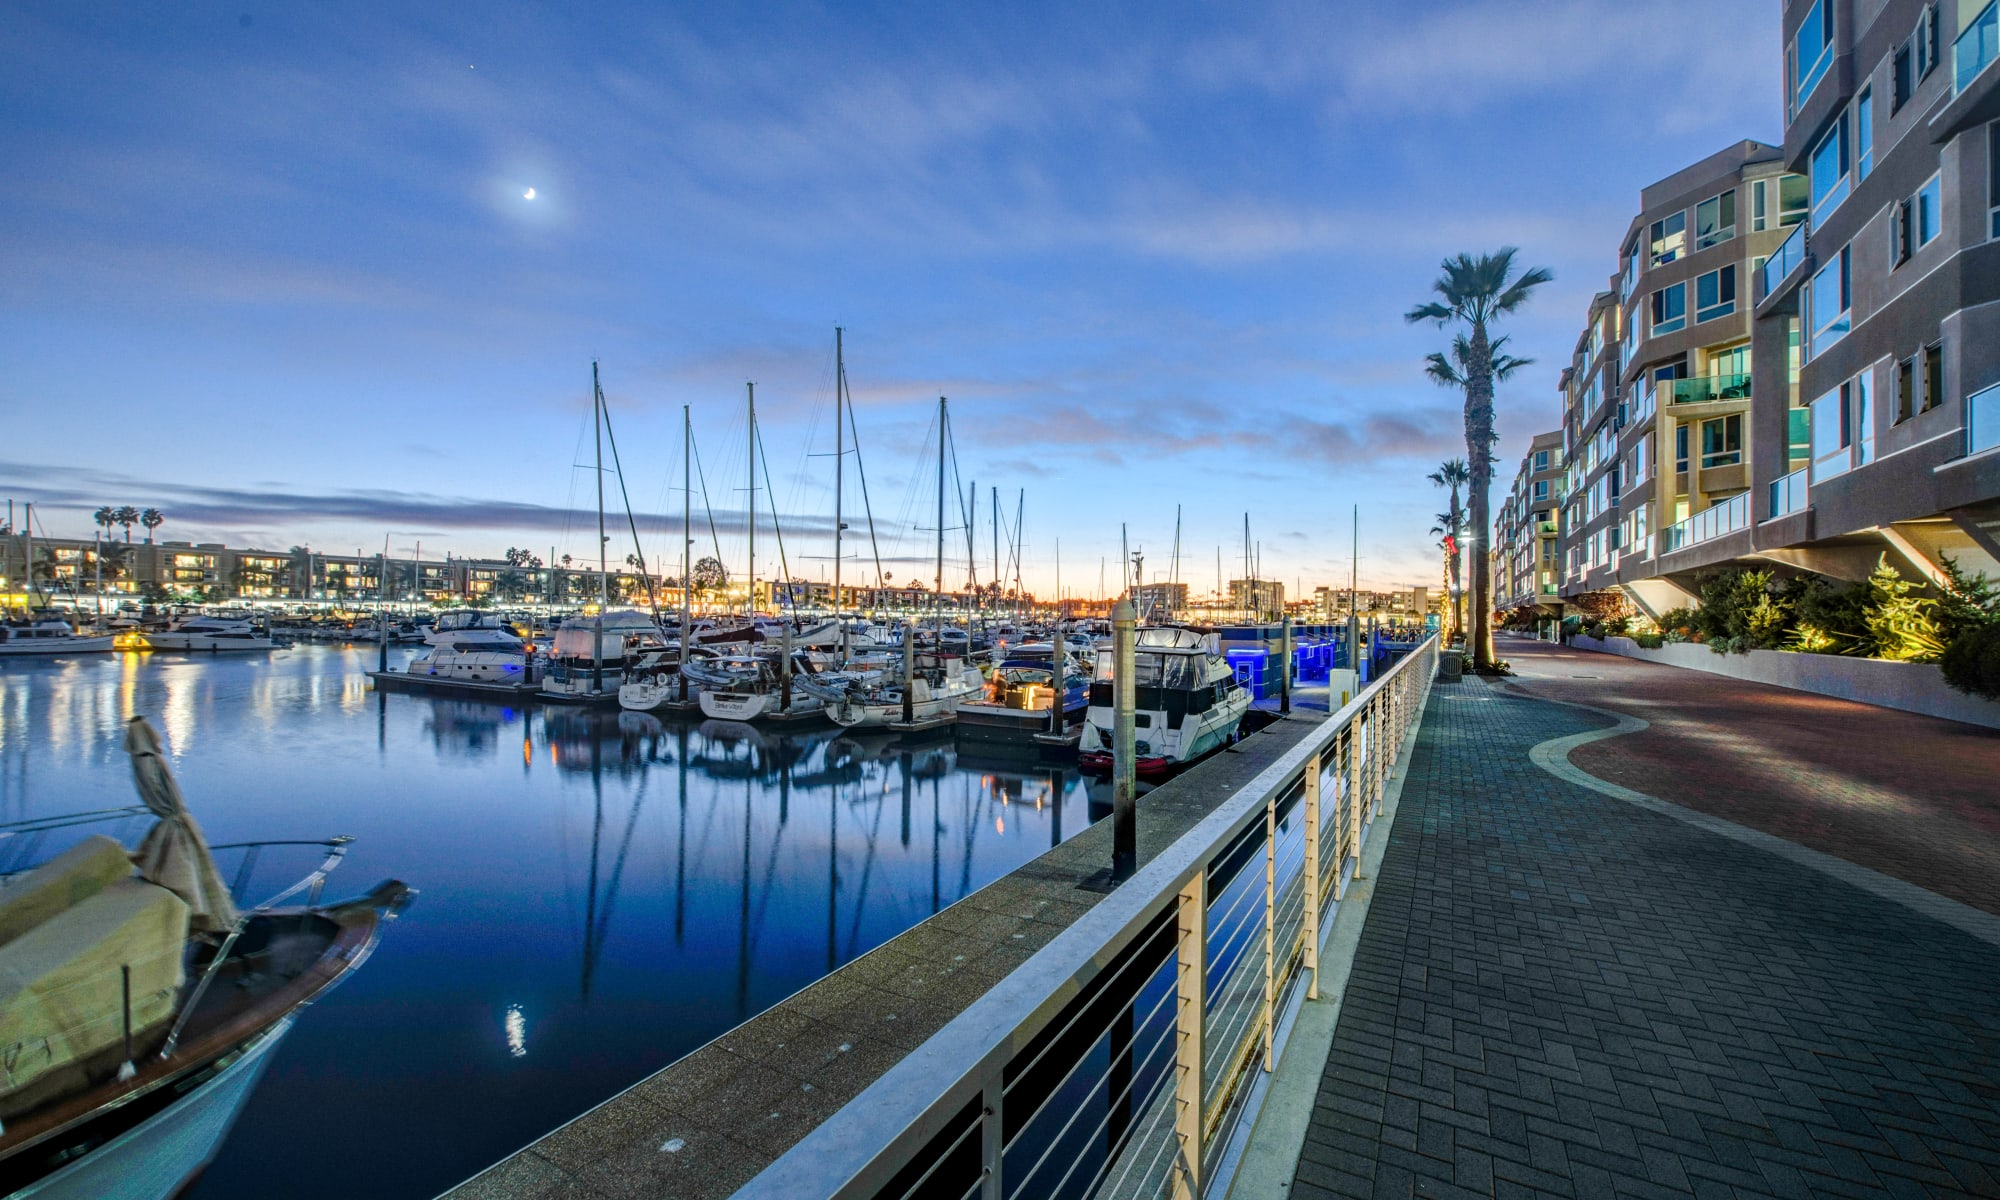 Twilight view of the marina at Esprit Marina del Rey in Marina Del Rey, California